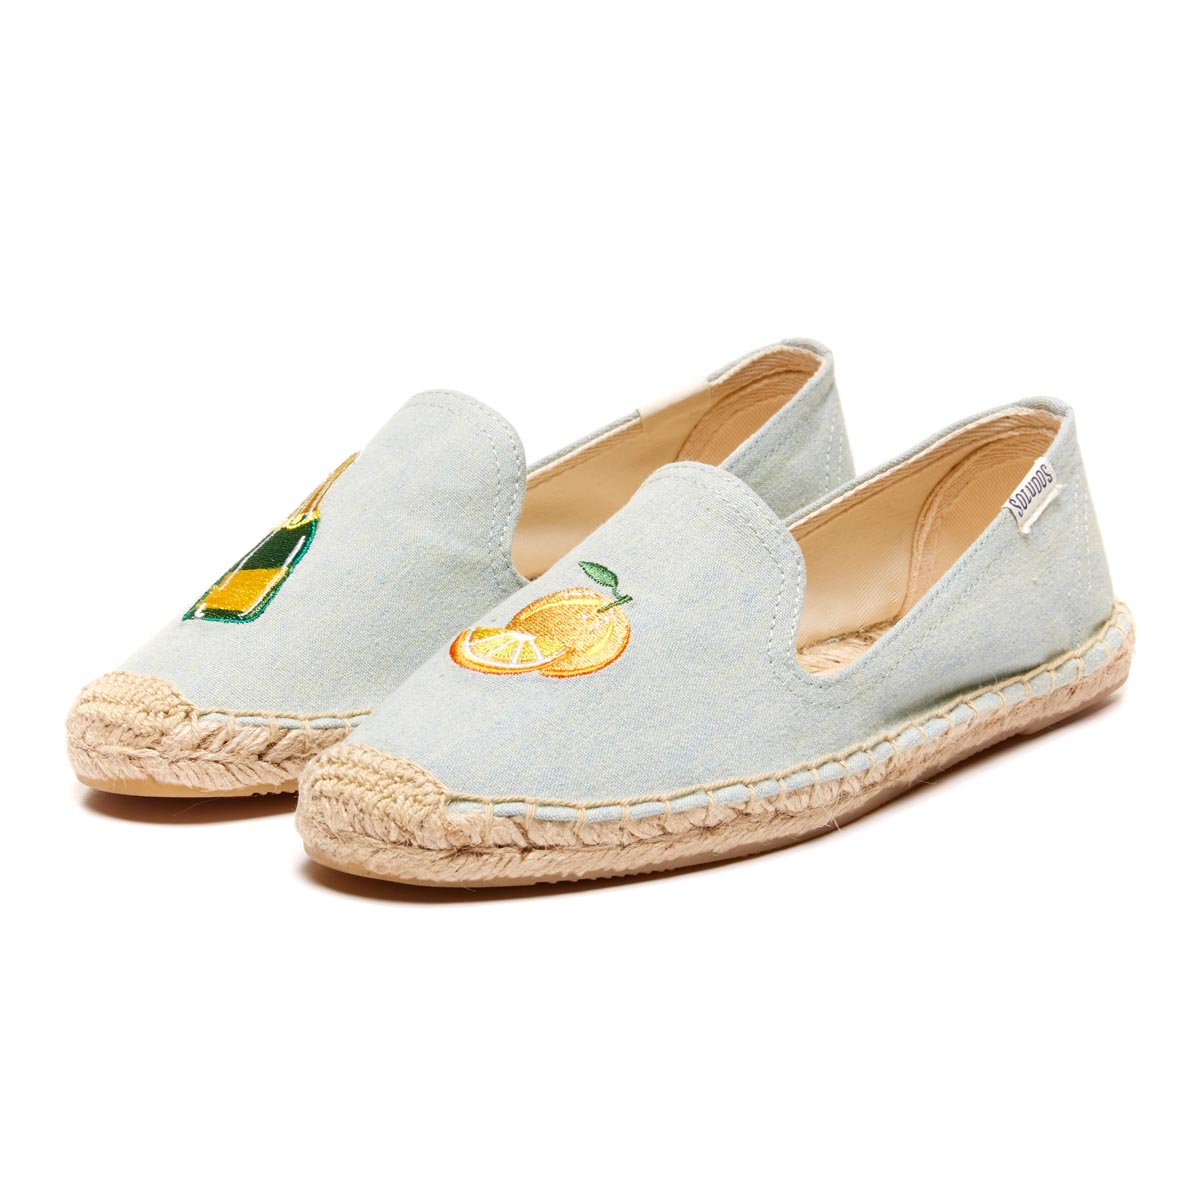 43db4ddcce9 Soludos Smoking Slipper Embroidery in Yellow - Lyst